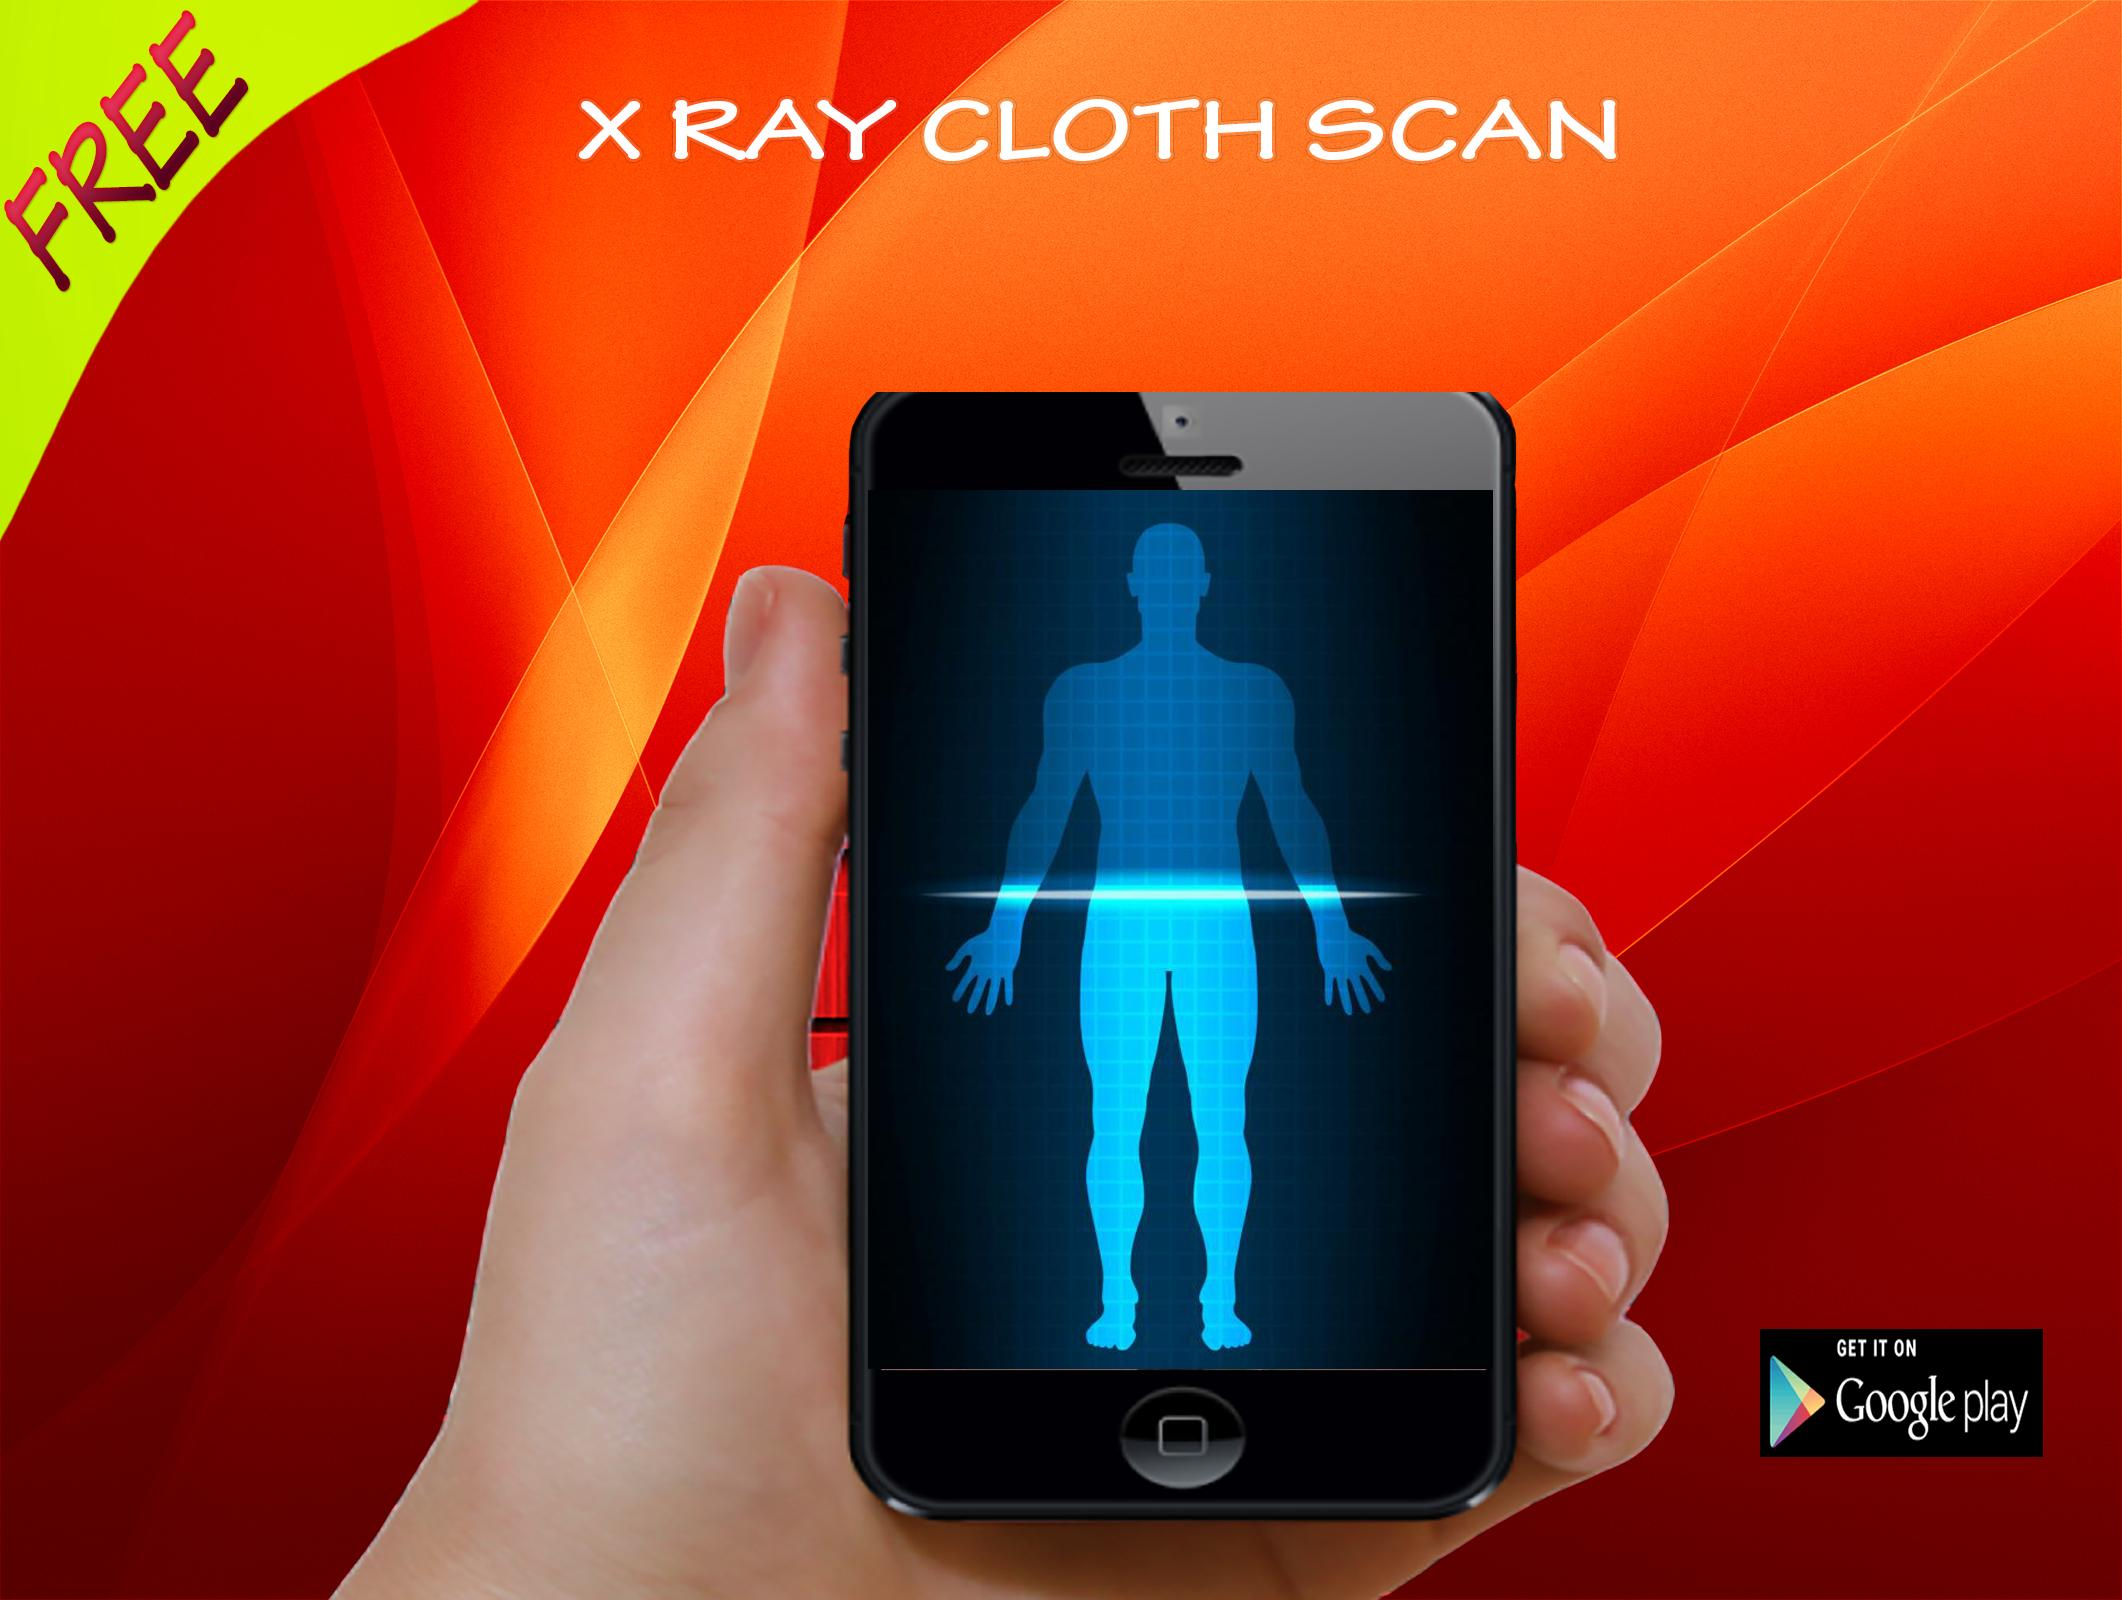 xray cloth scan camera prank for android apk download xray cloth scan camera prank for